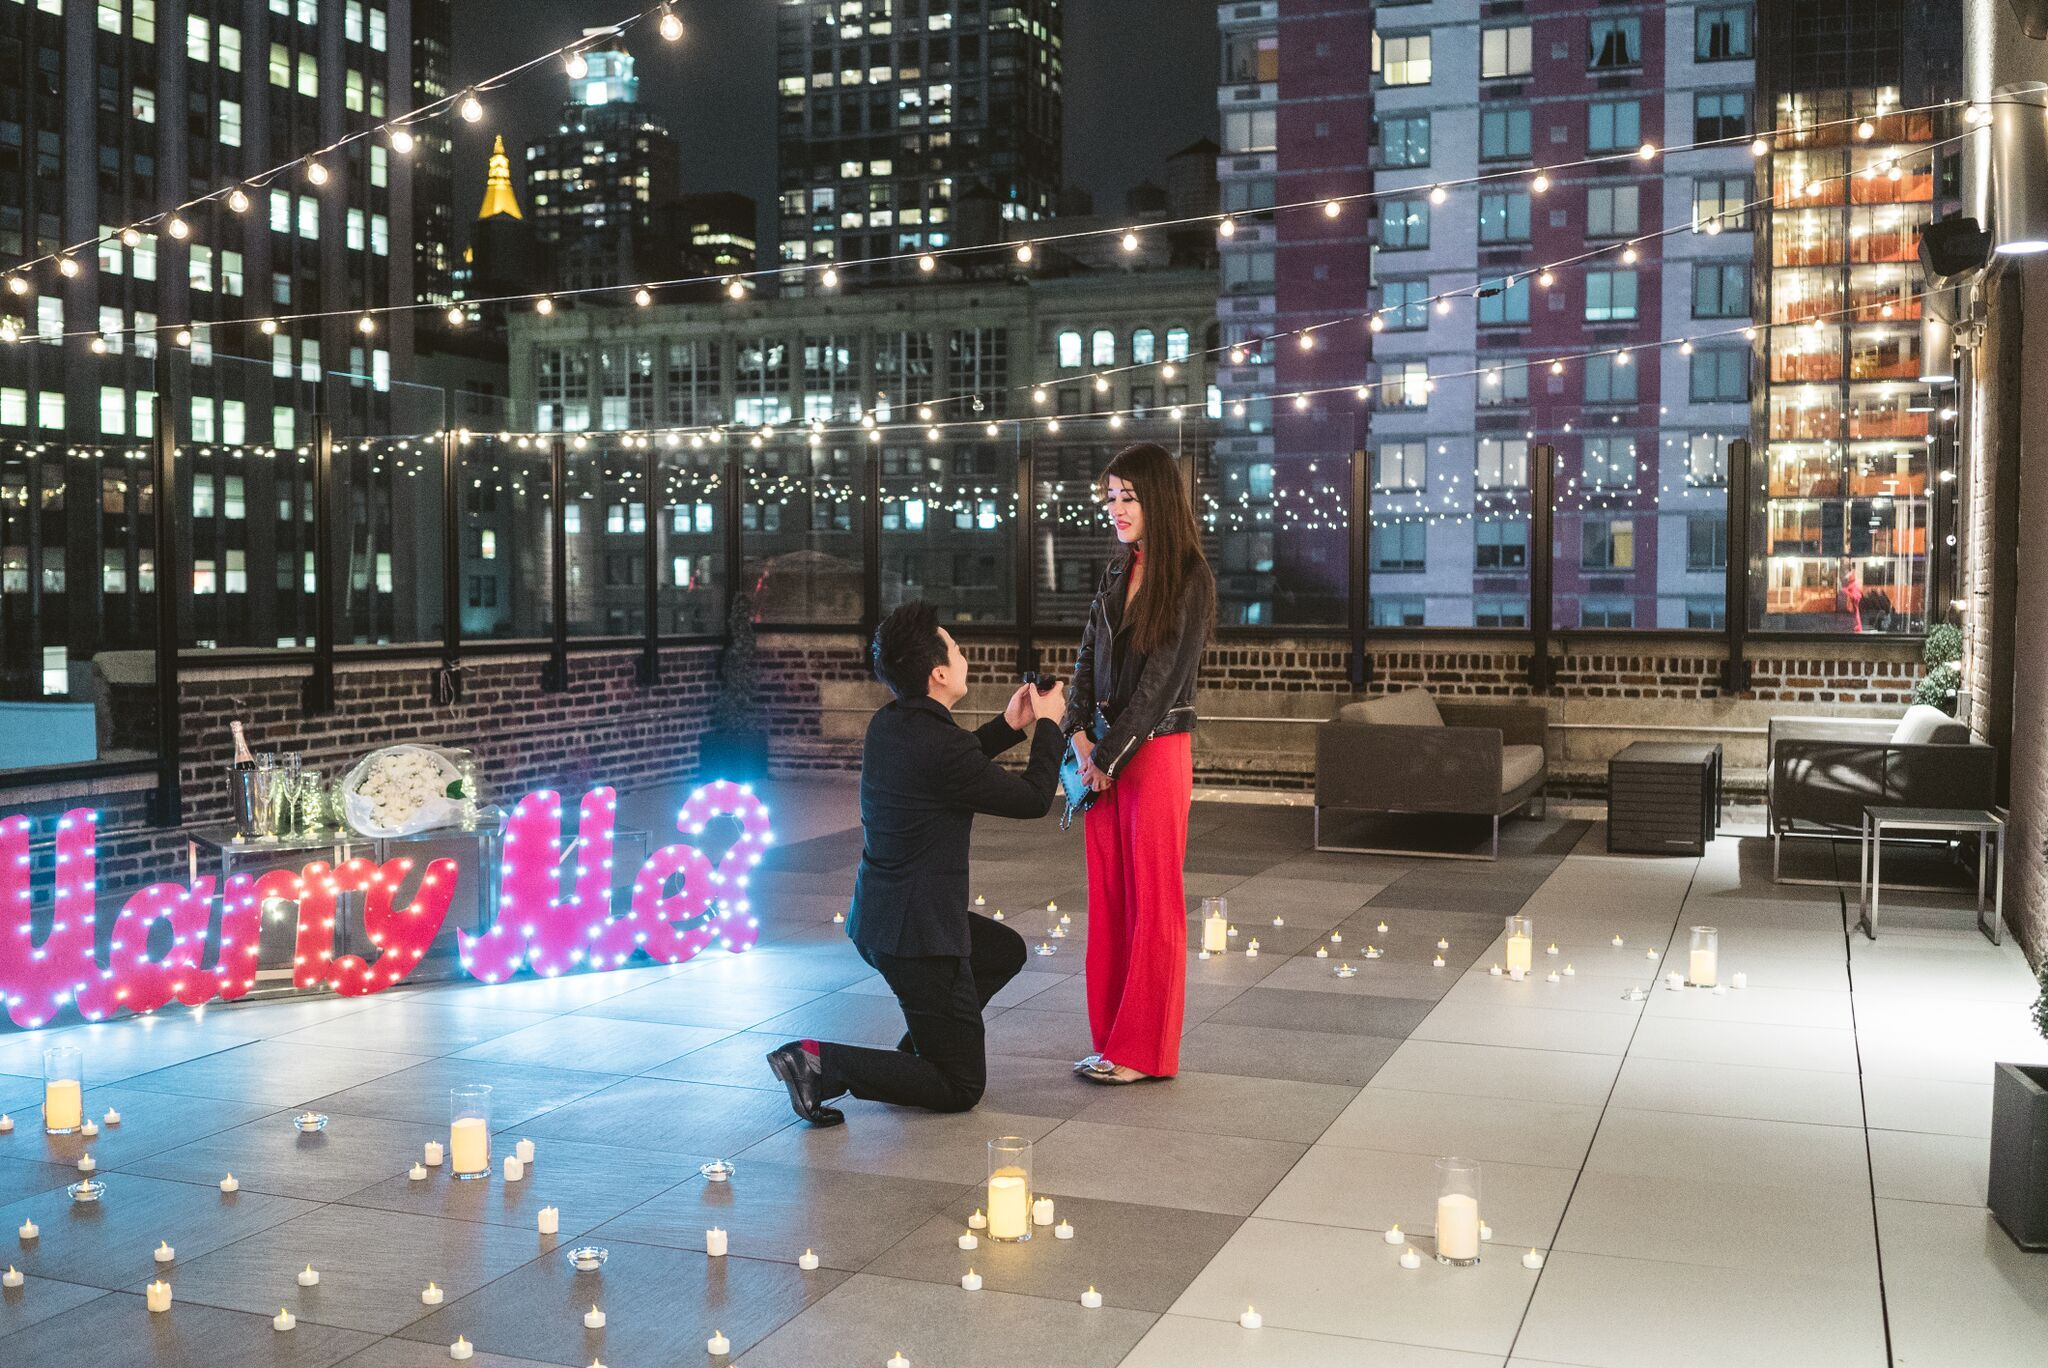 Private rooftop marriage proposal  #nyc #marriageproposal #ido #engagementphotography #savethedate #rooftopproposal